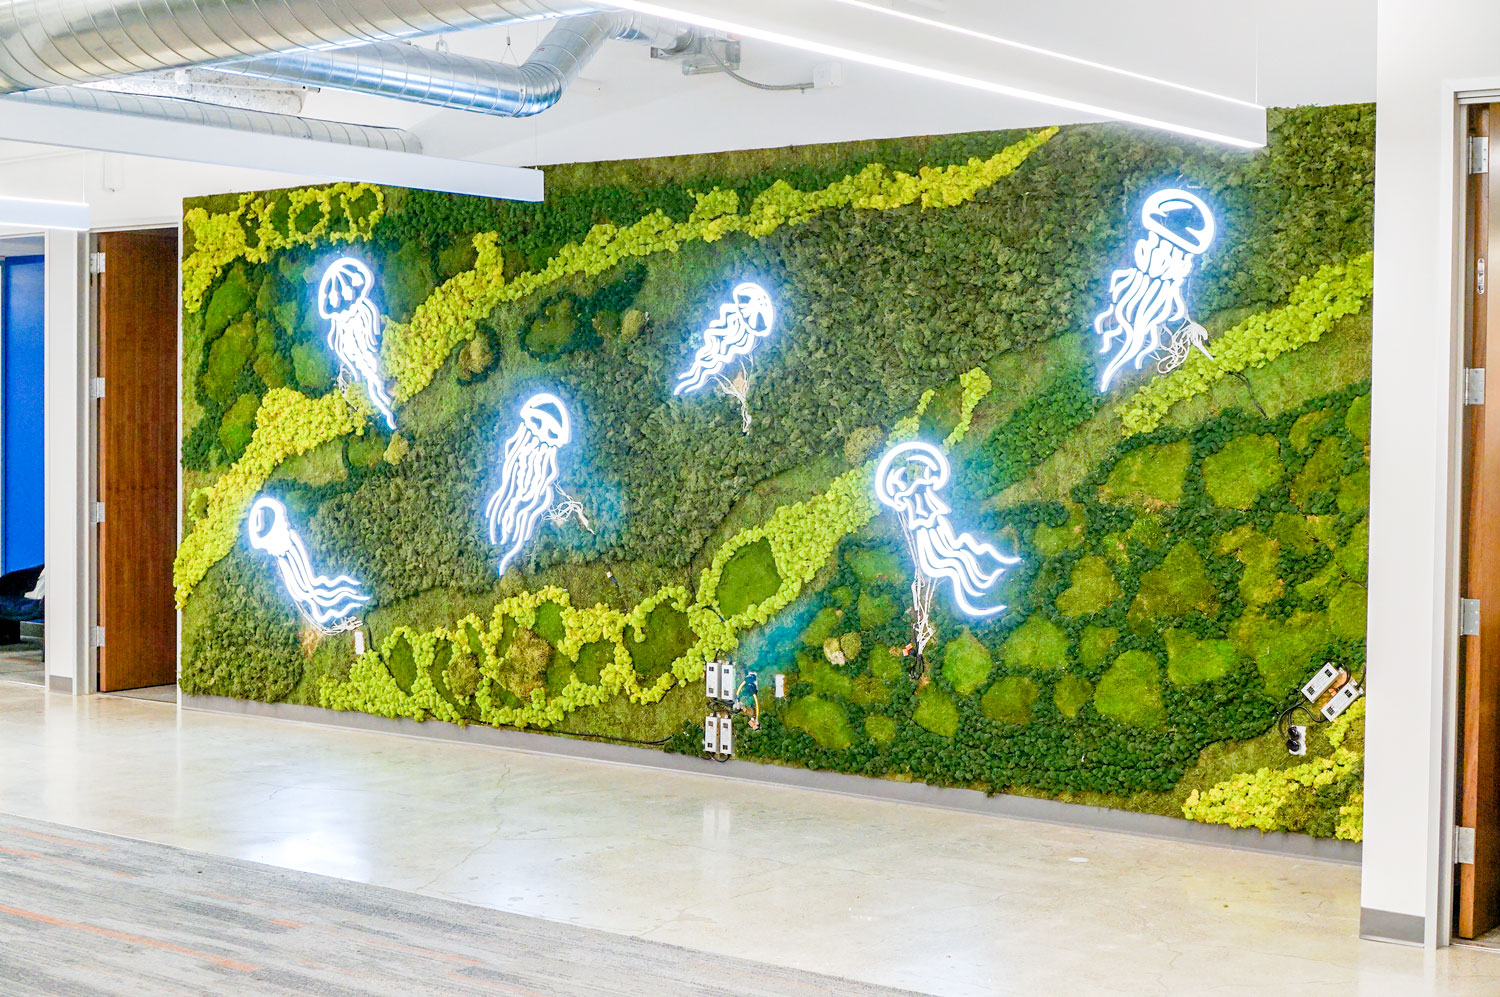 Illuminated, neon-style jellyfish on moss wall at the office of Benchling, a San Francisco based company working on a unified platform to accelerate, measure, and forecast R&D from discovery through bioprocessing.